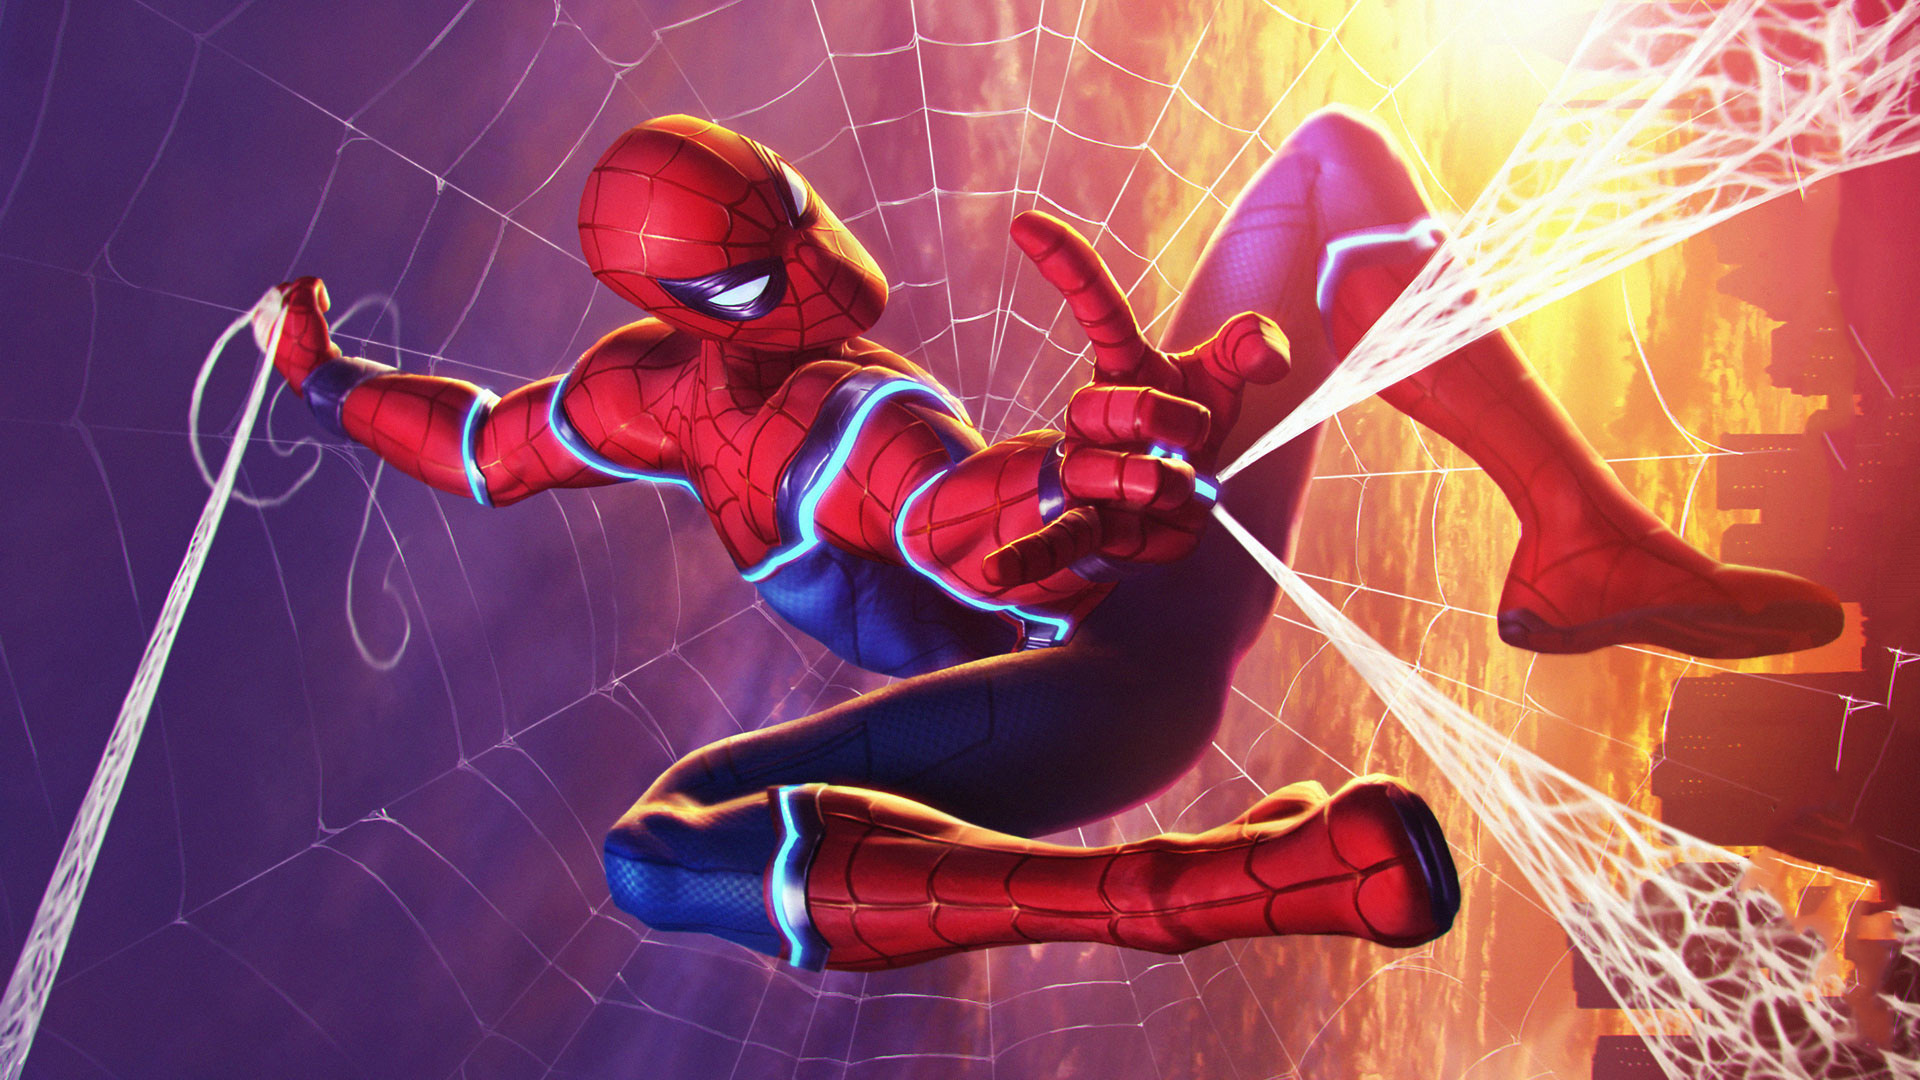 Spiderman Marvel Contest Of Champions, HD Games, 4k ...